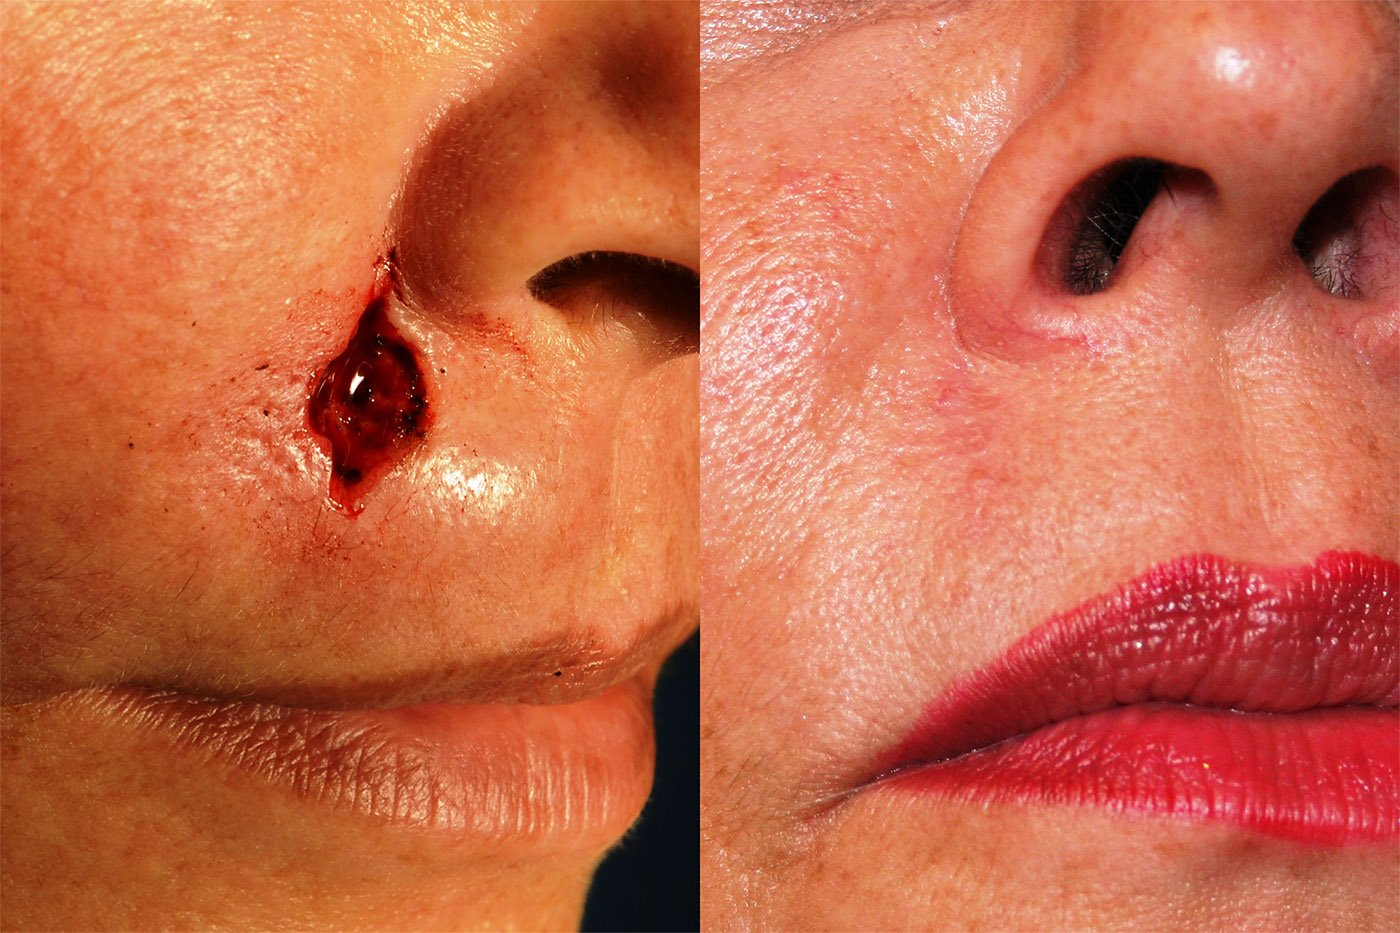 Mohs excision of skin cancer repair 8 weeks after surgery